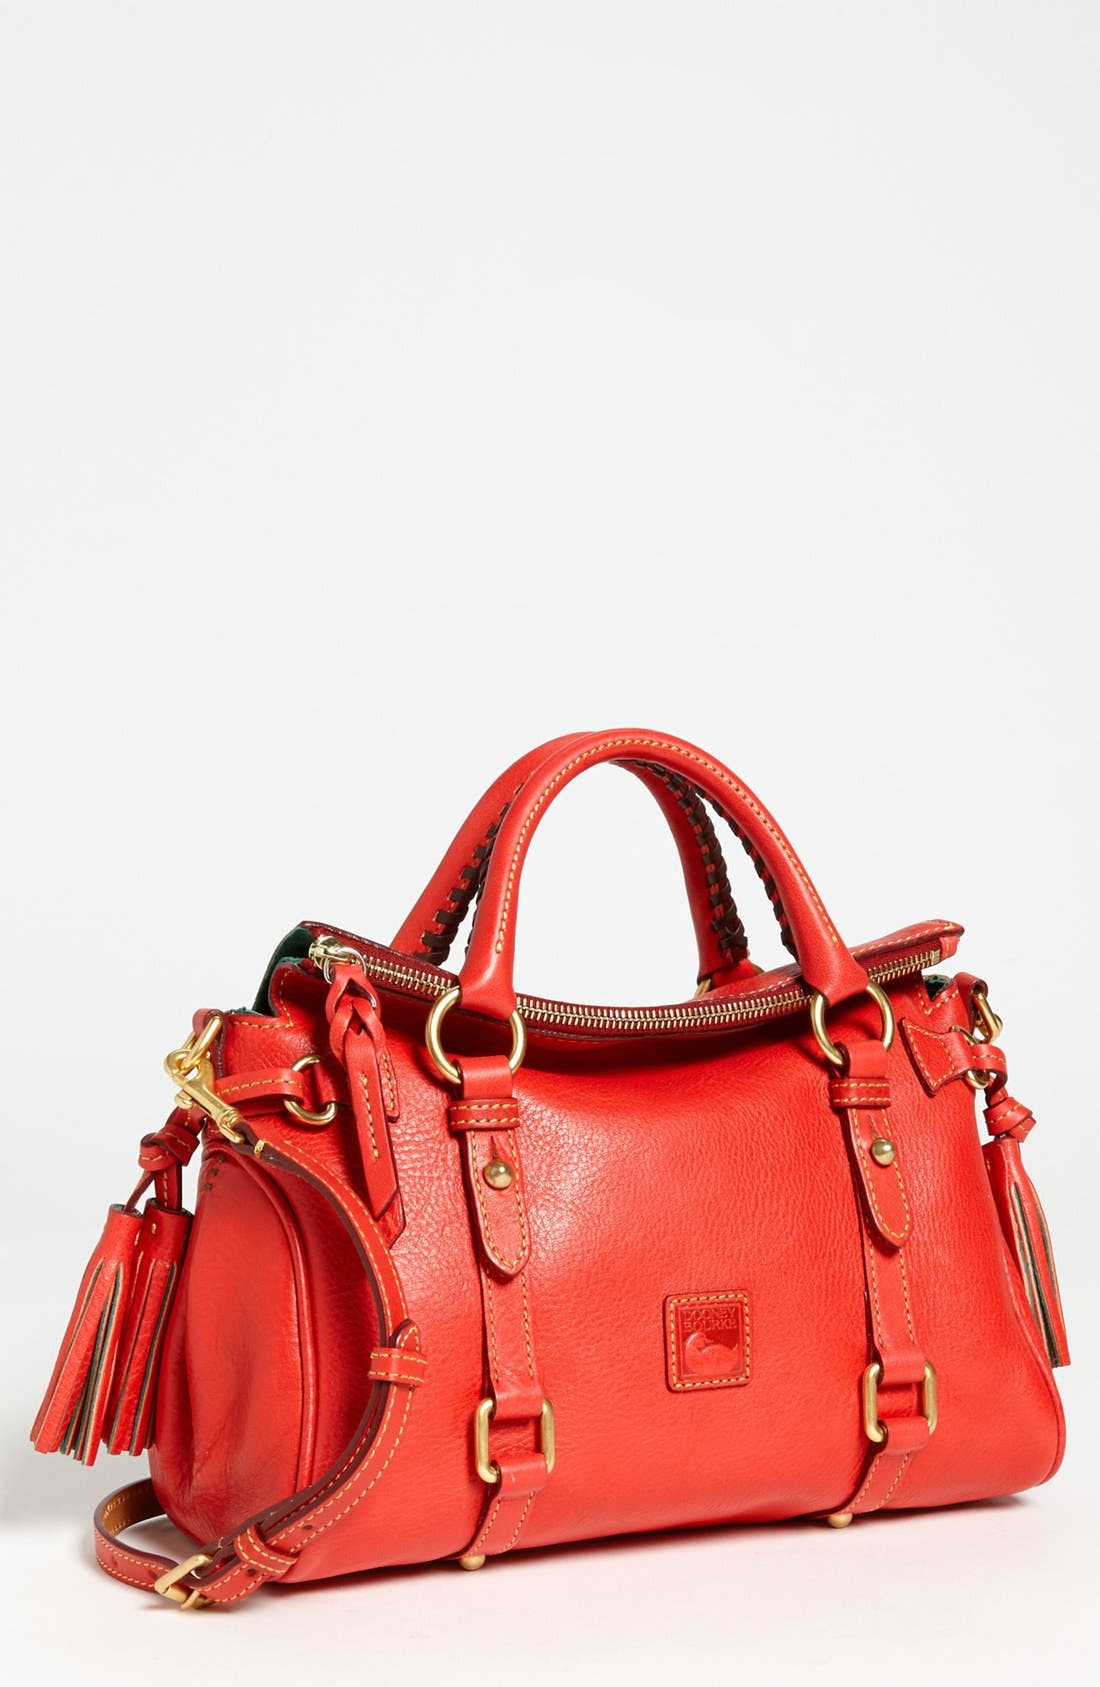 Alternate Image 1 Selected - Dooney & Bourke 'Mini - Florentine Collection' Leather Satchel